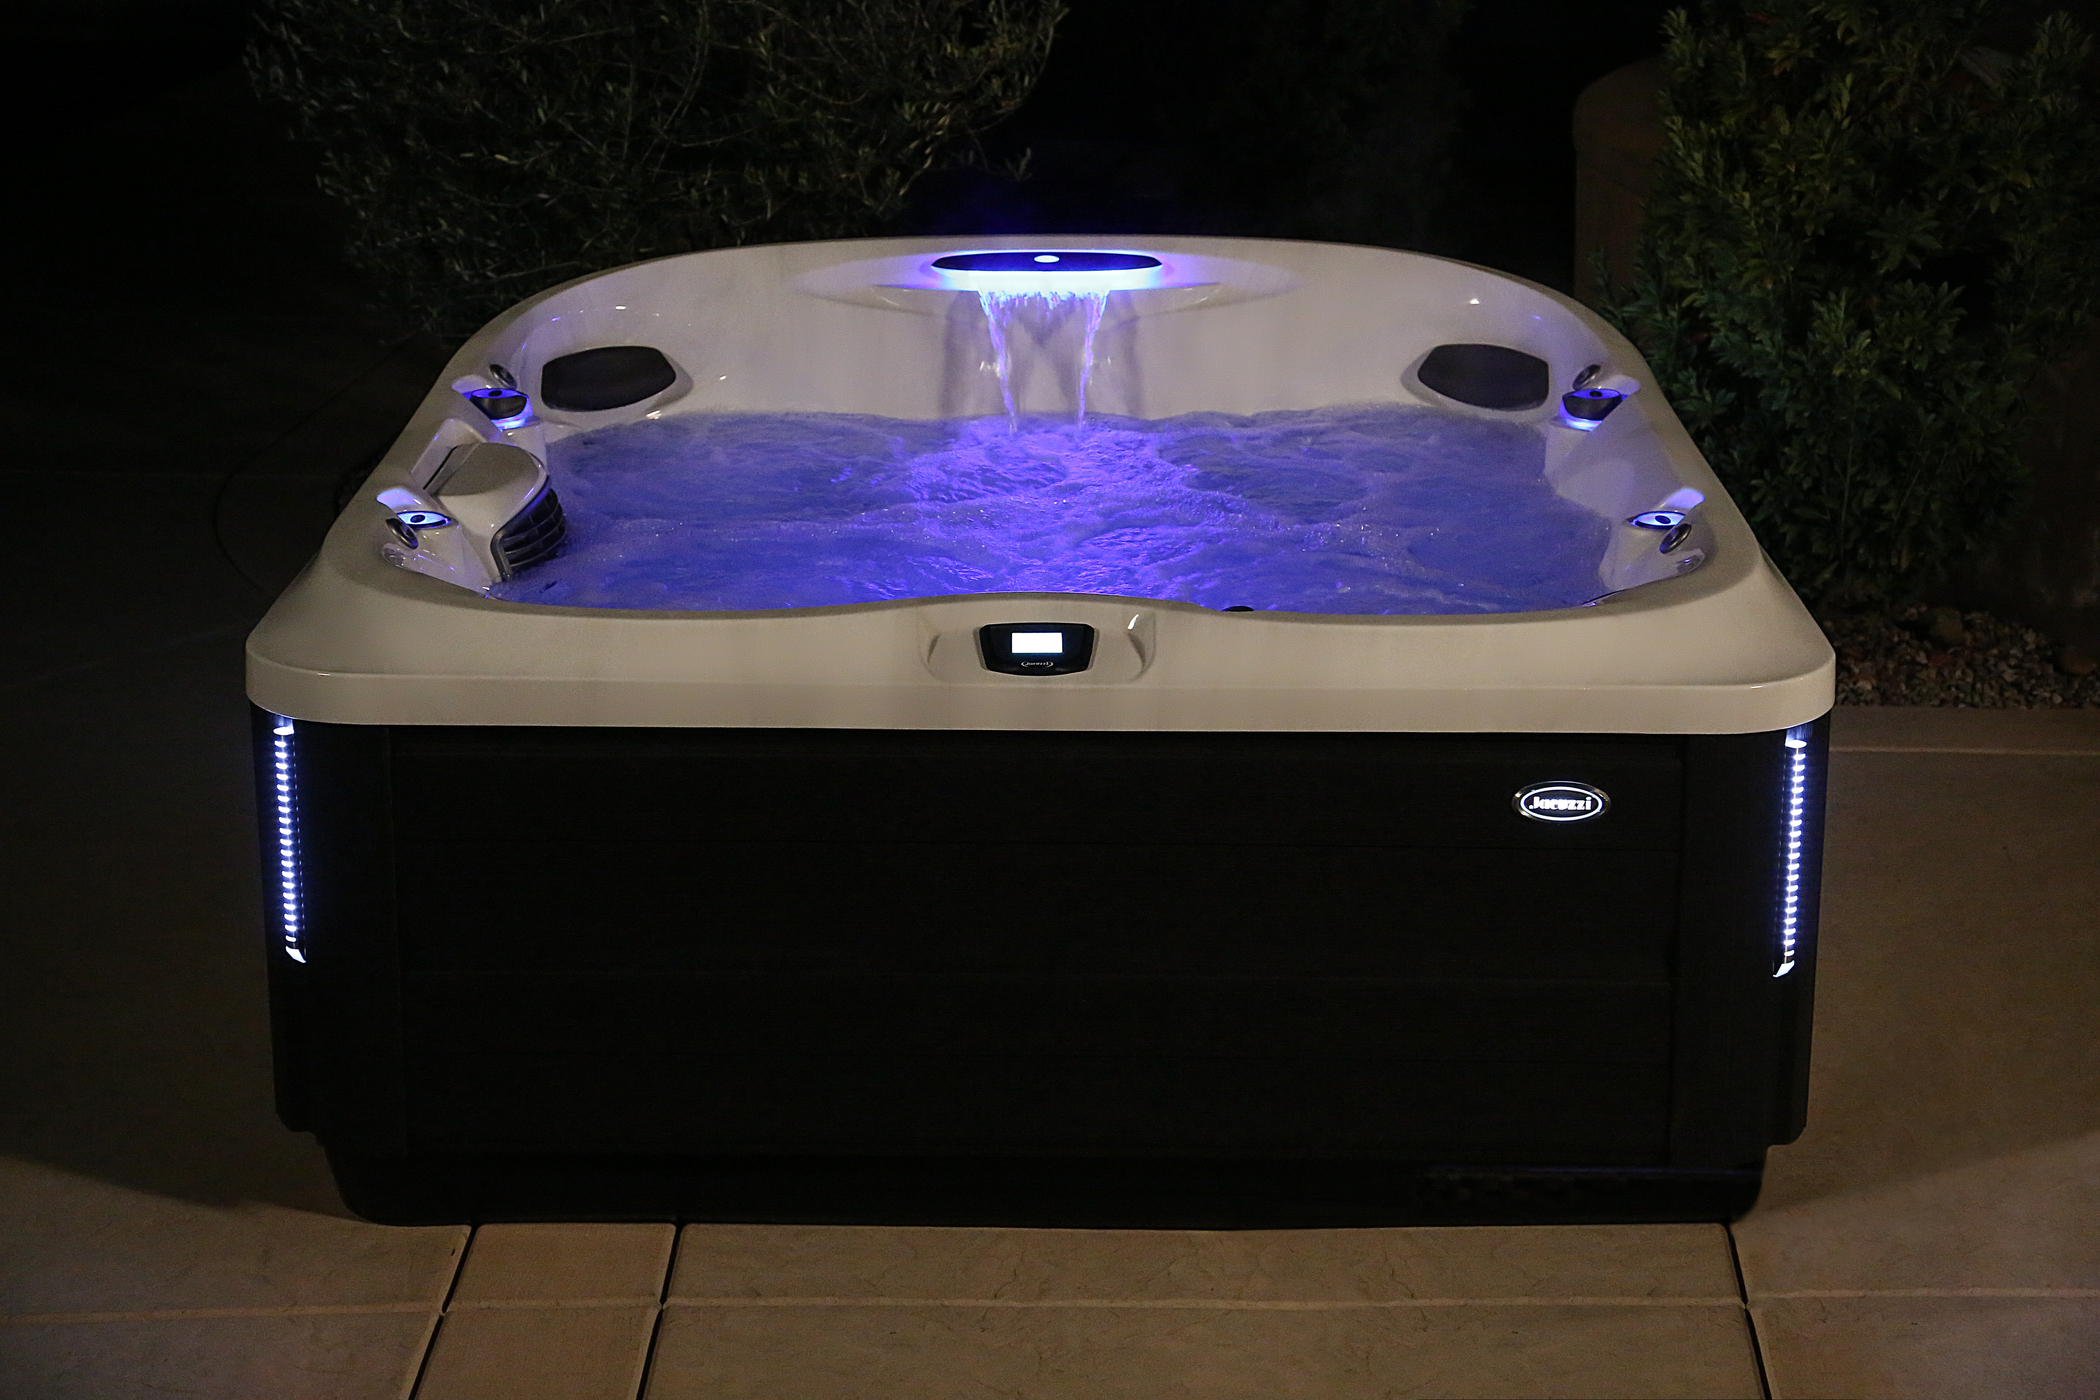 Outdoor Jacuzzi Hot Tub at night.